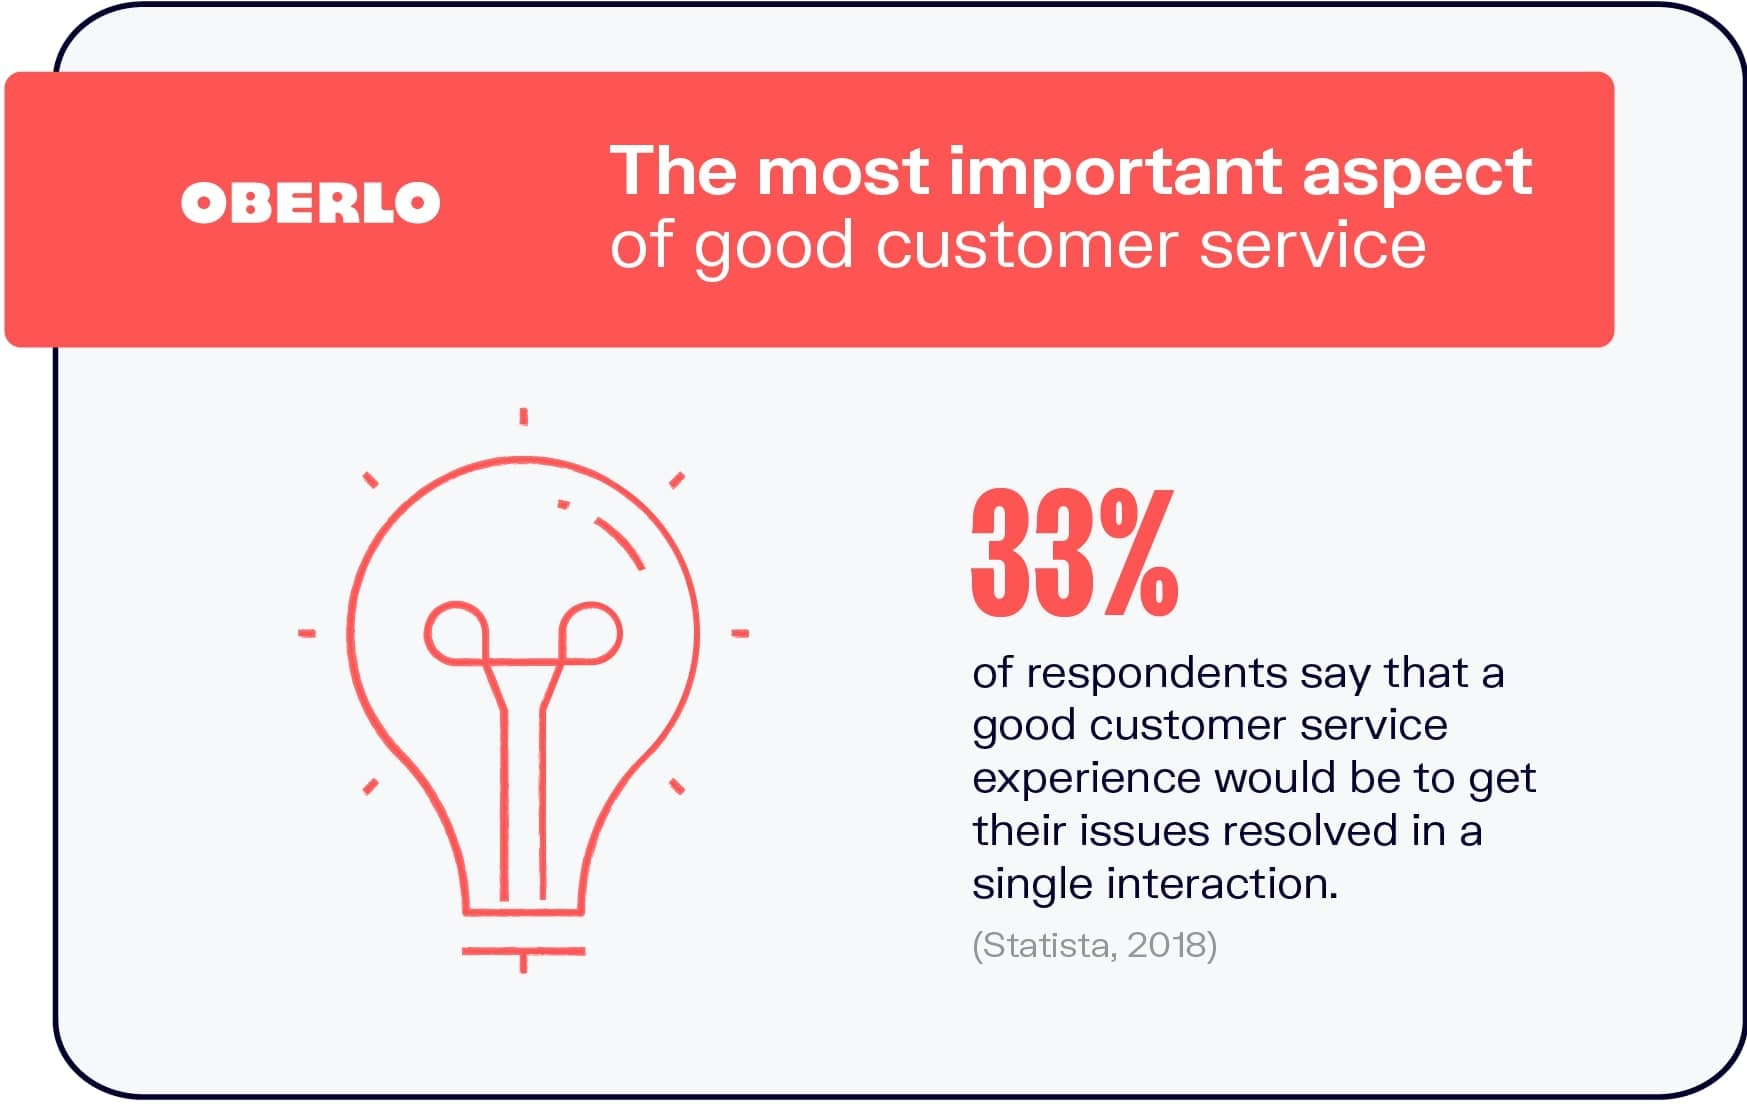 The Best Aspect of Good Customer Service